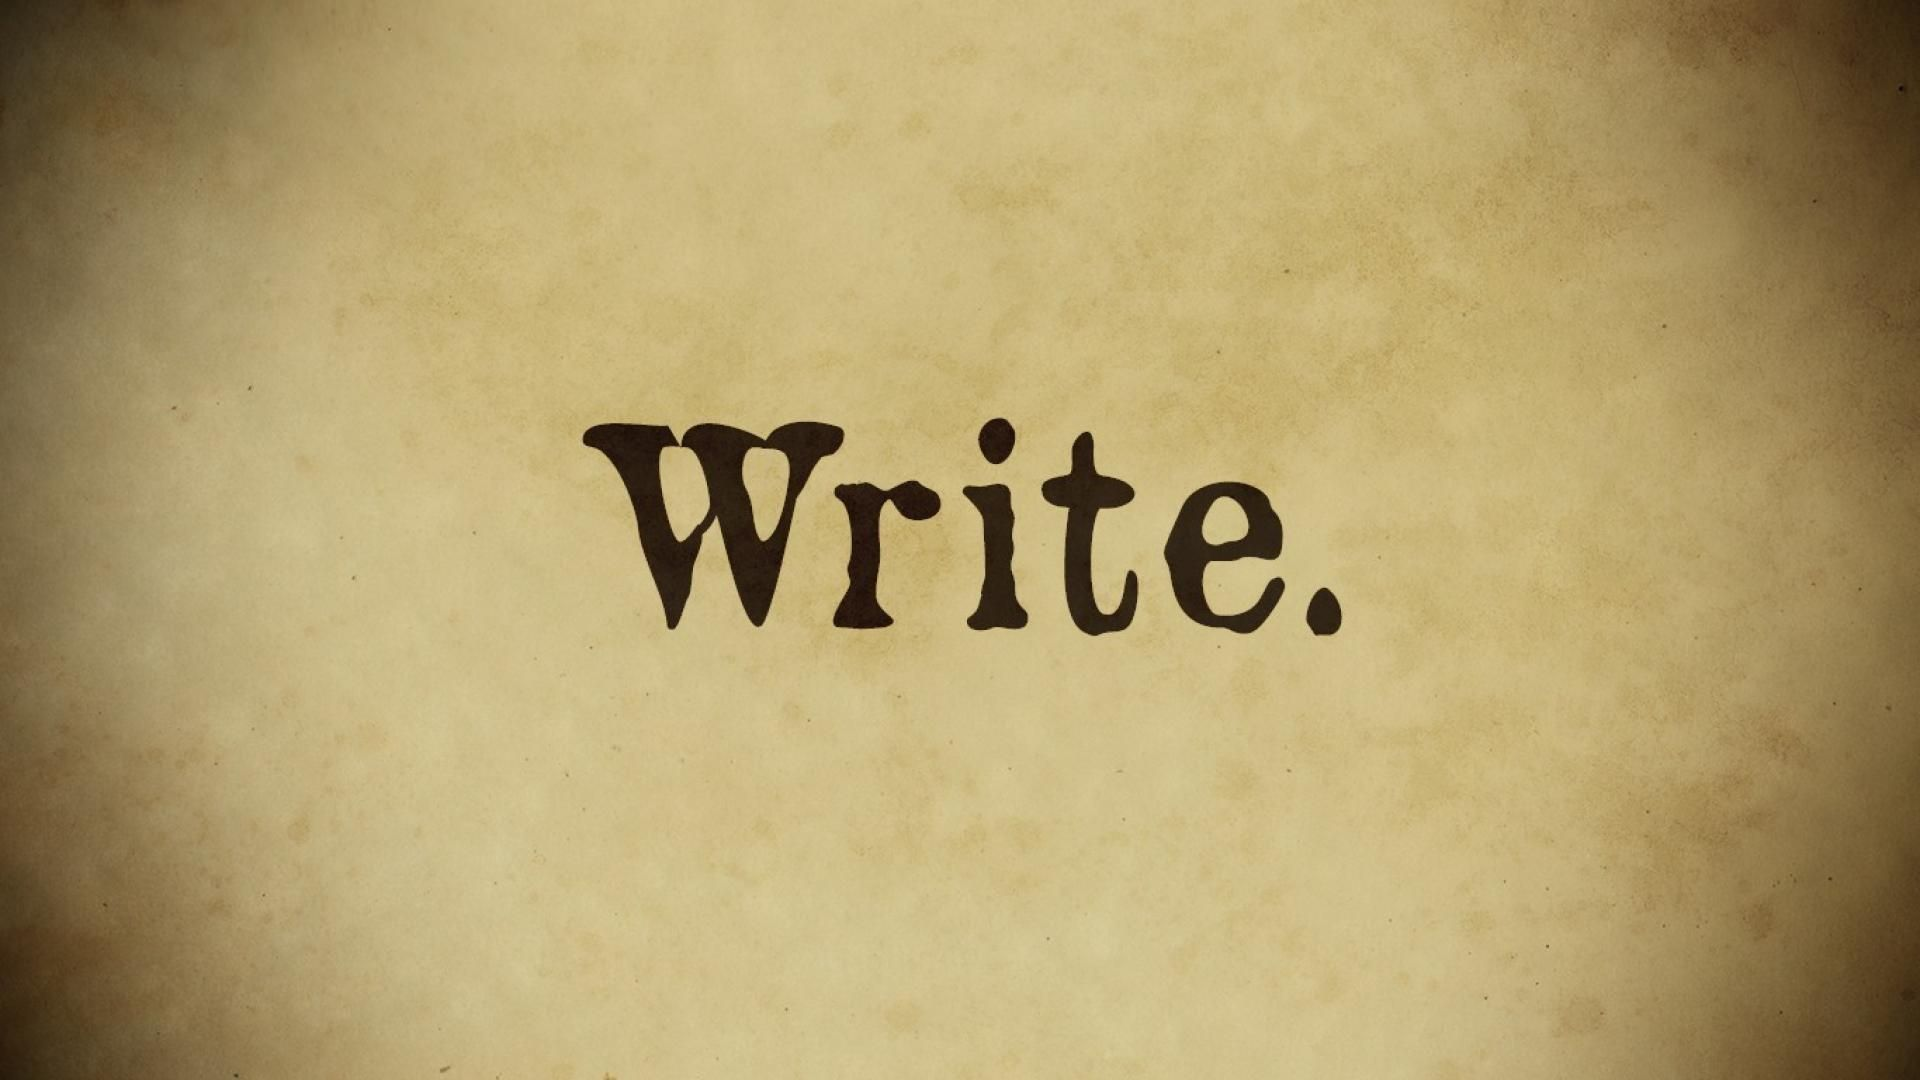 1920x1080 Artwork inspirational typewriters writing art write writer wallpaper ...